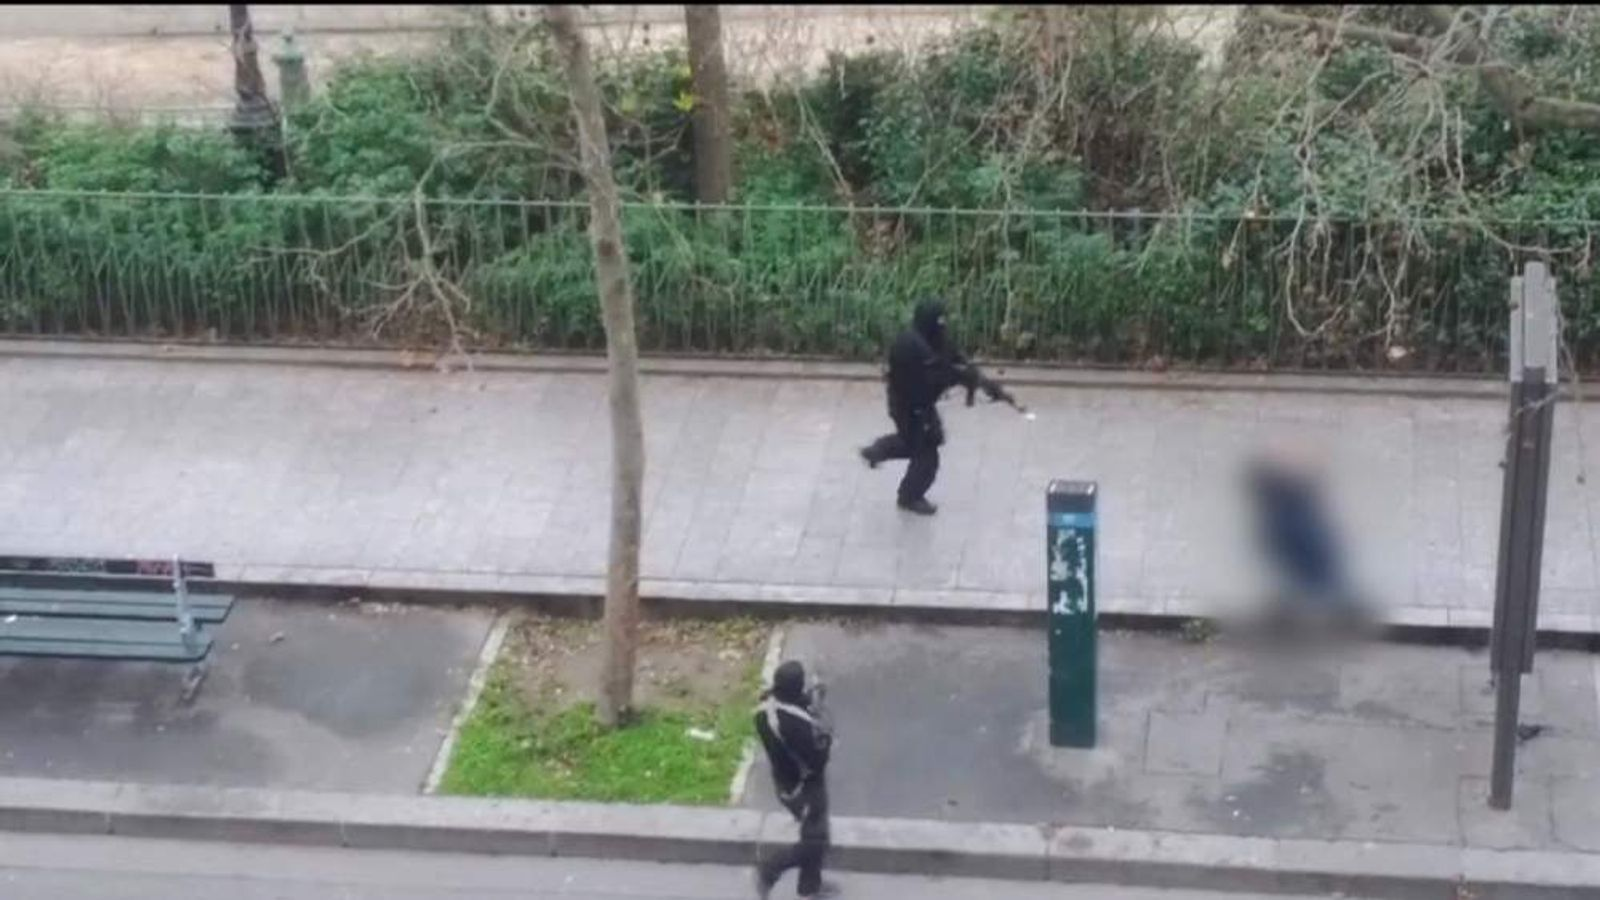 Paris Shooting gunmen kill police officer